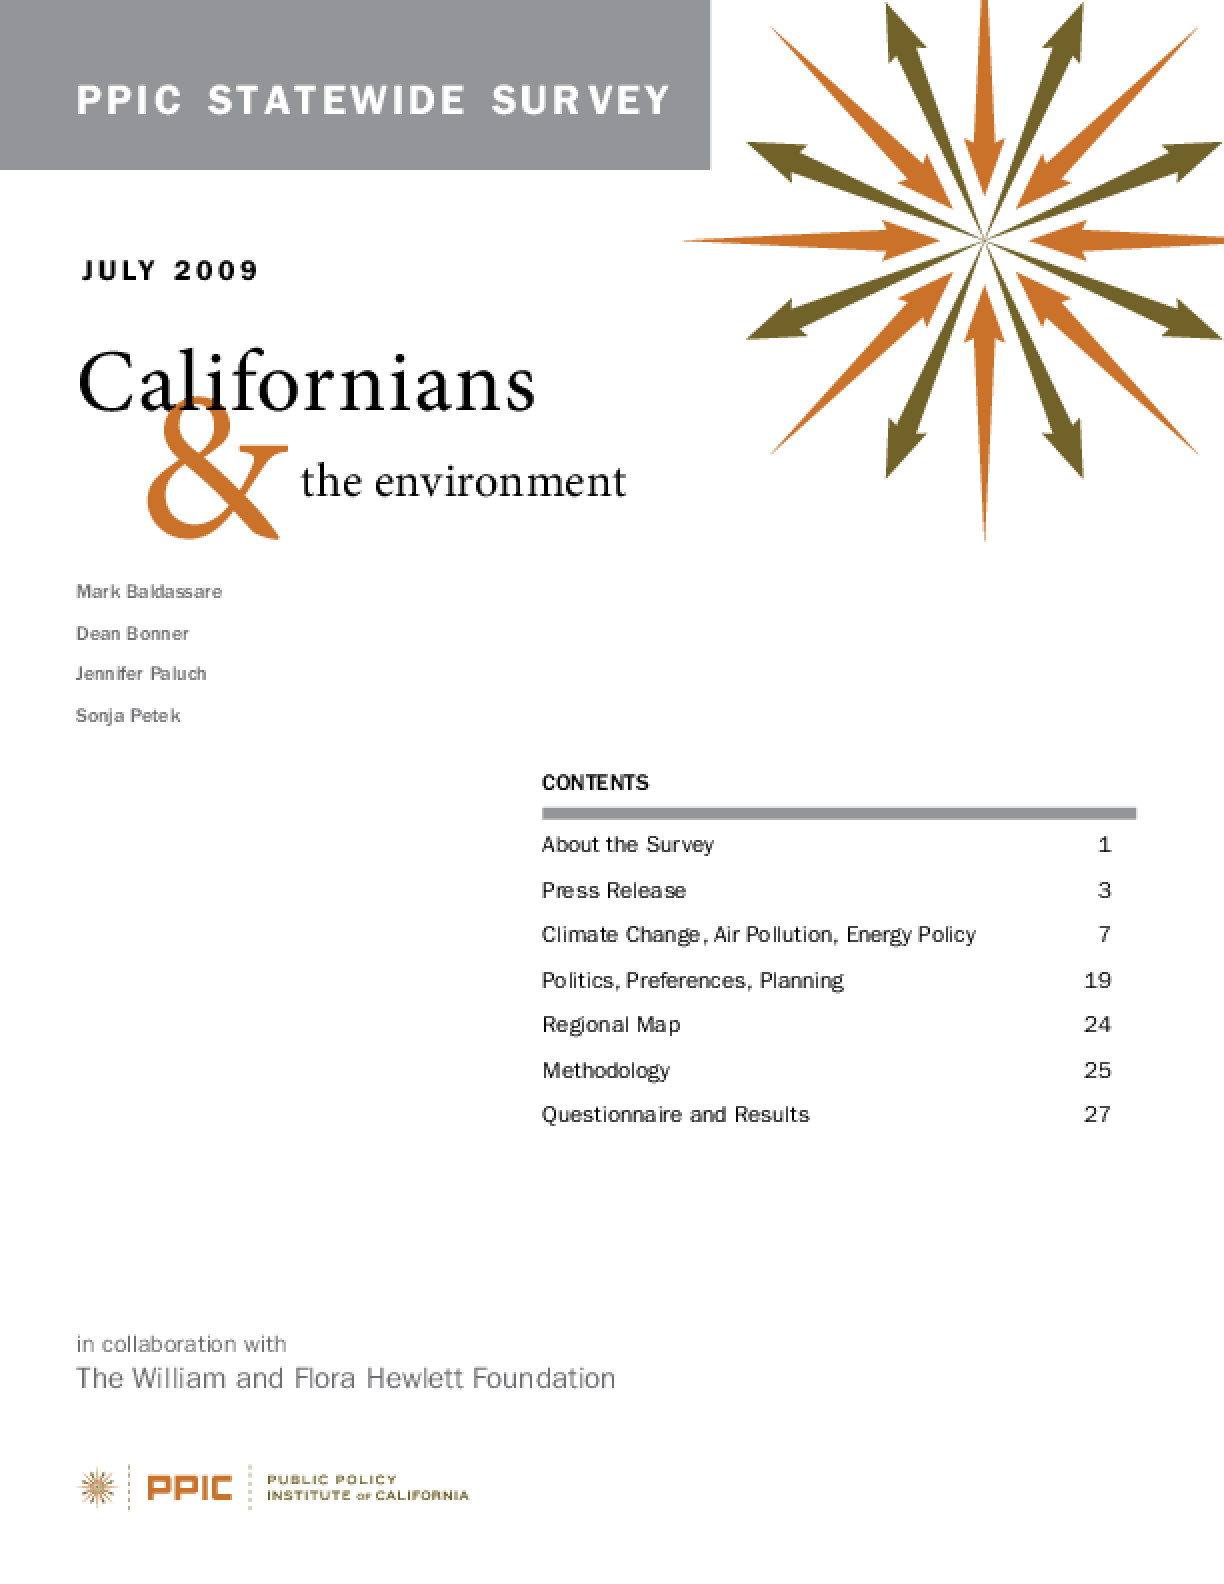 PPIC Statewide Survey: Californians & the Environment 2009